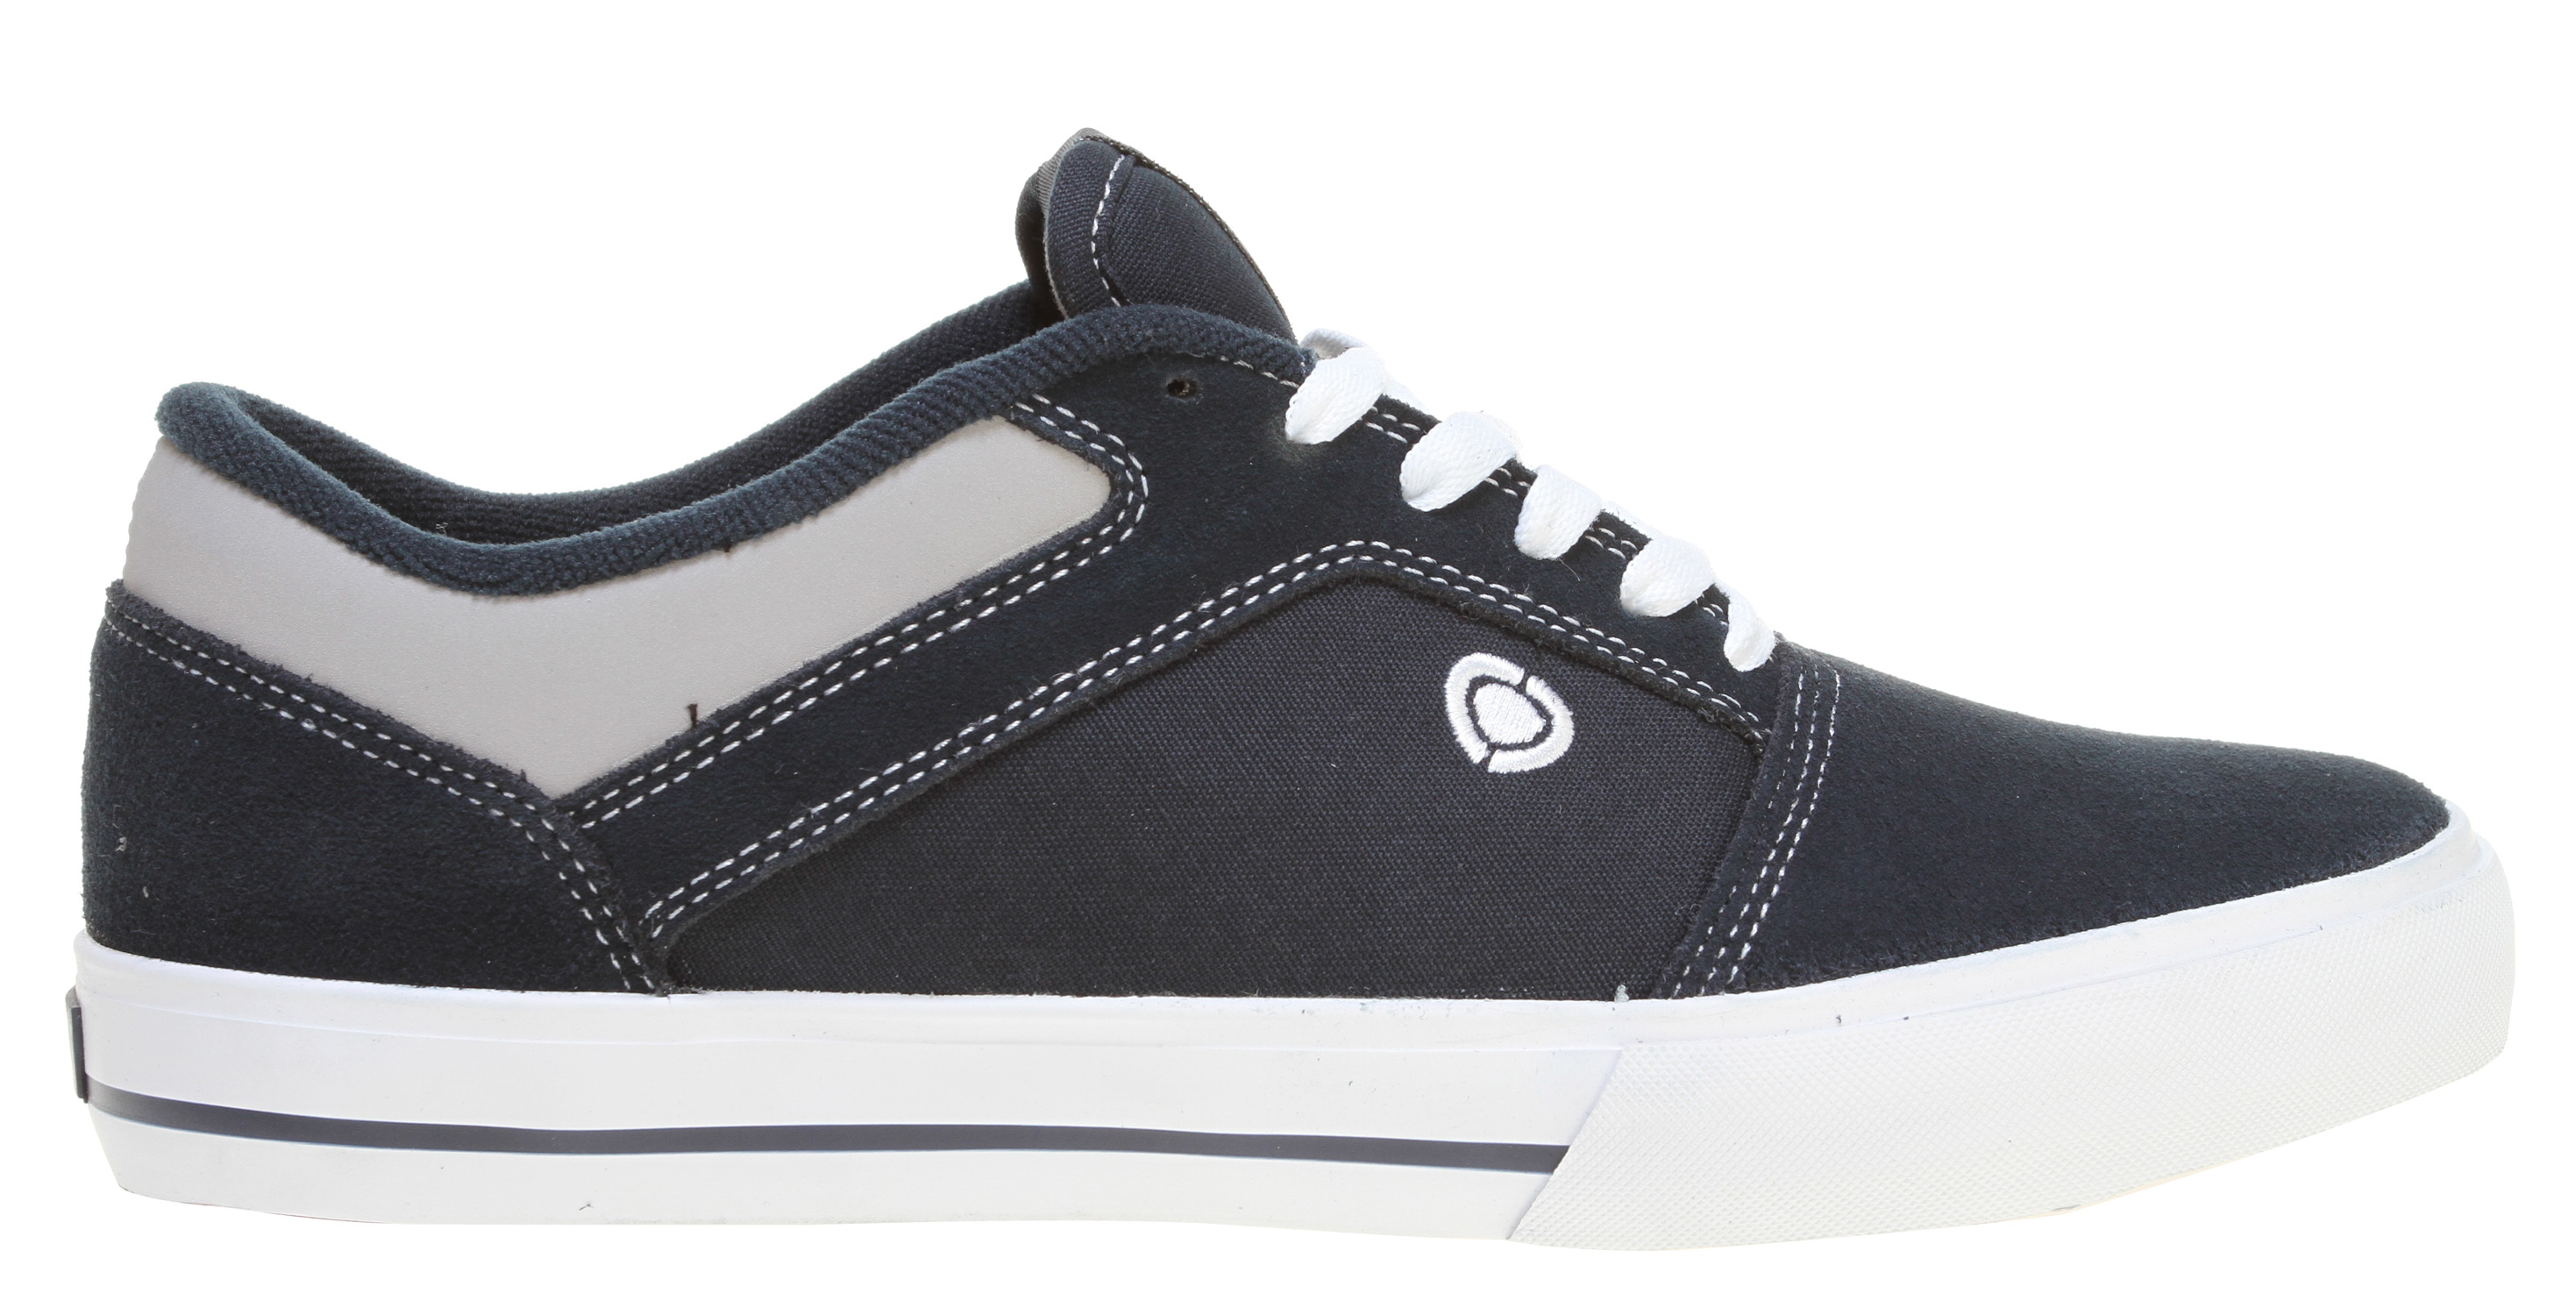 Skateboard Key Features of the Circa Revert Skate Shoes: Slim Low Profile Fit and Look Genuine Vulcanized Construction FusionGrip outsole rubber for ultimate grip C1rca herringbone outsole provides improved board control - $39.95